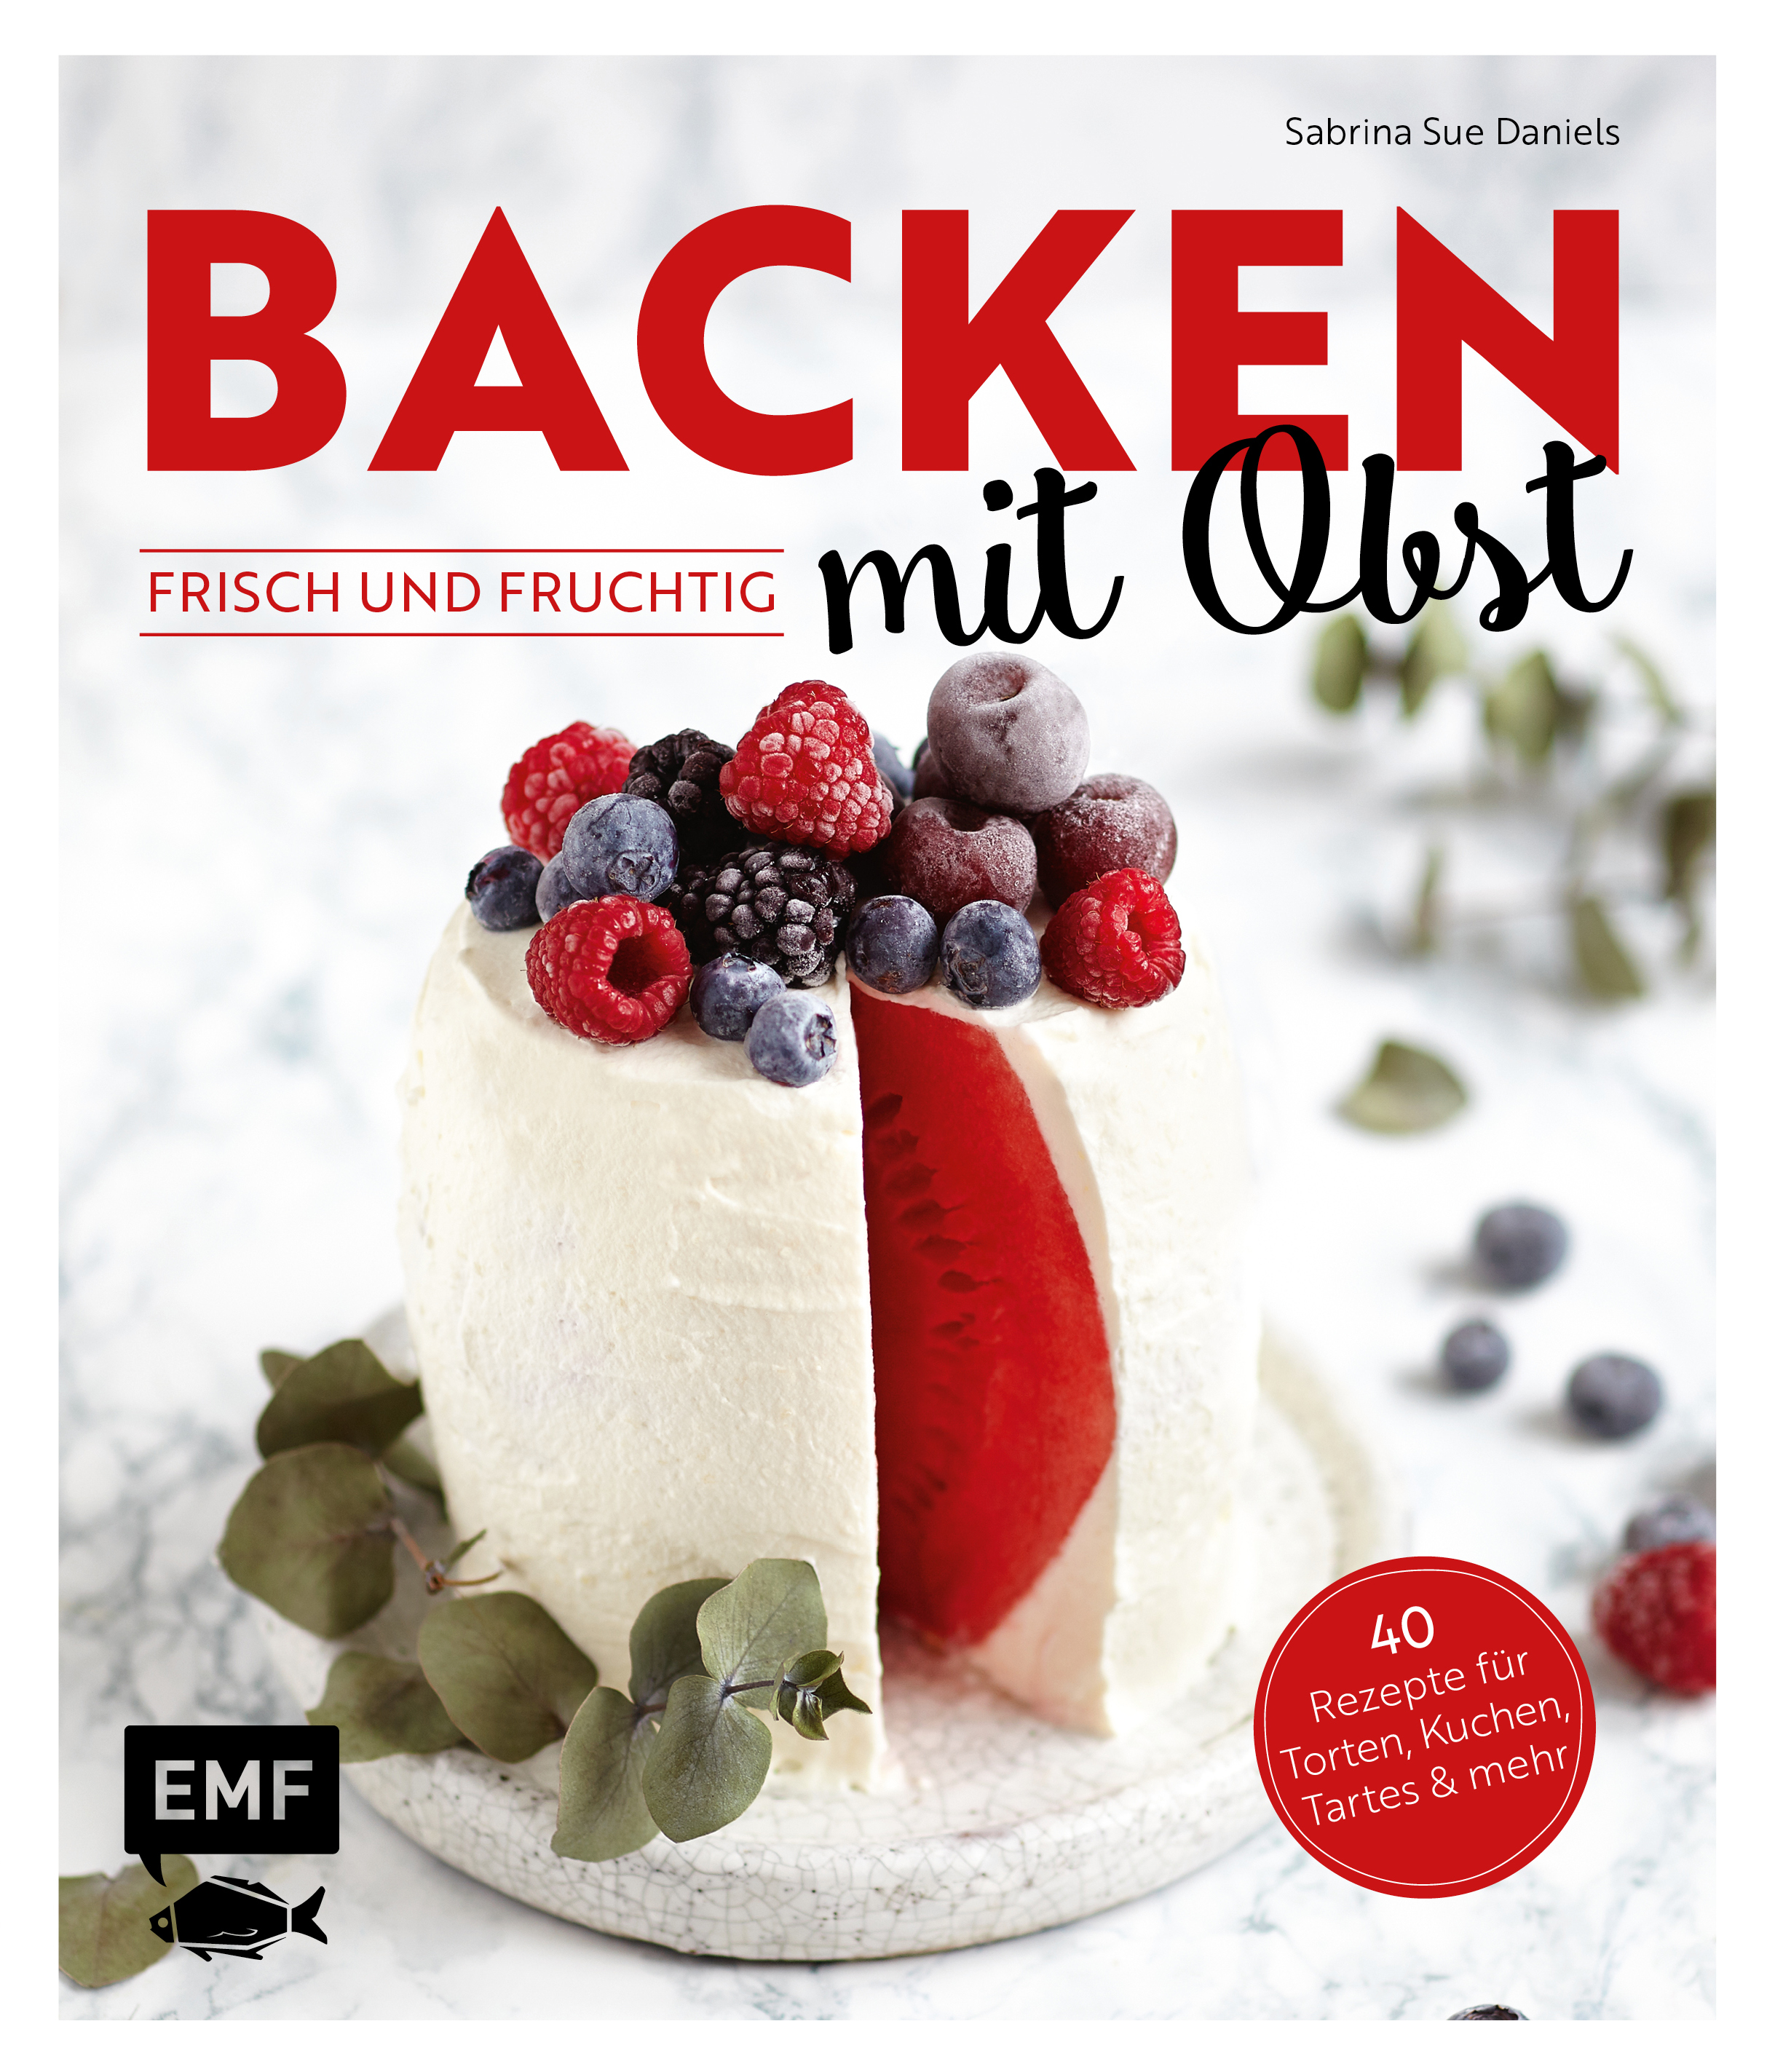 Backen mit Obst